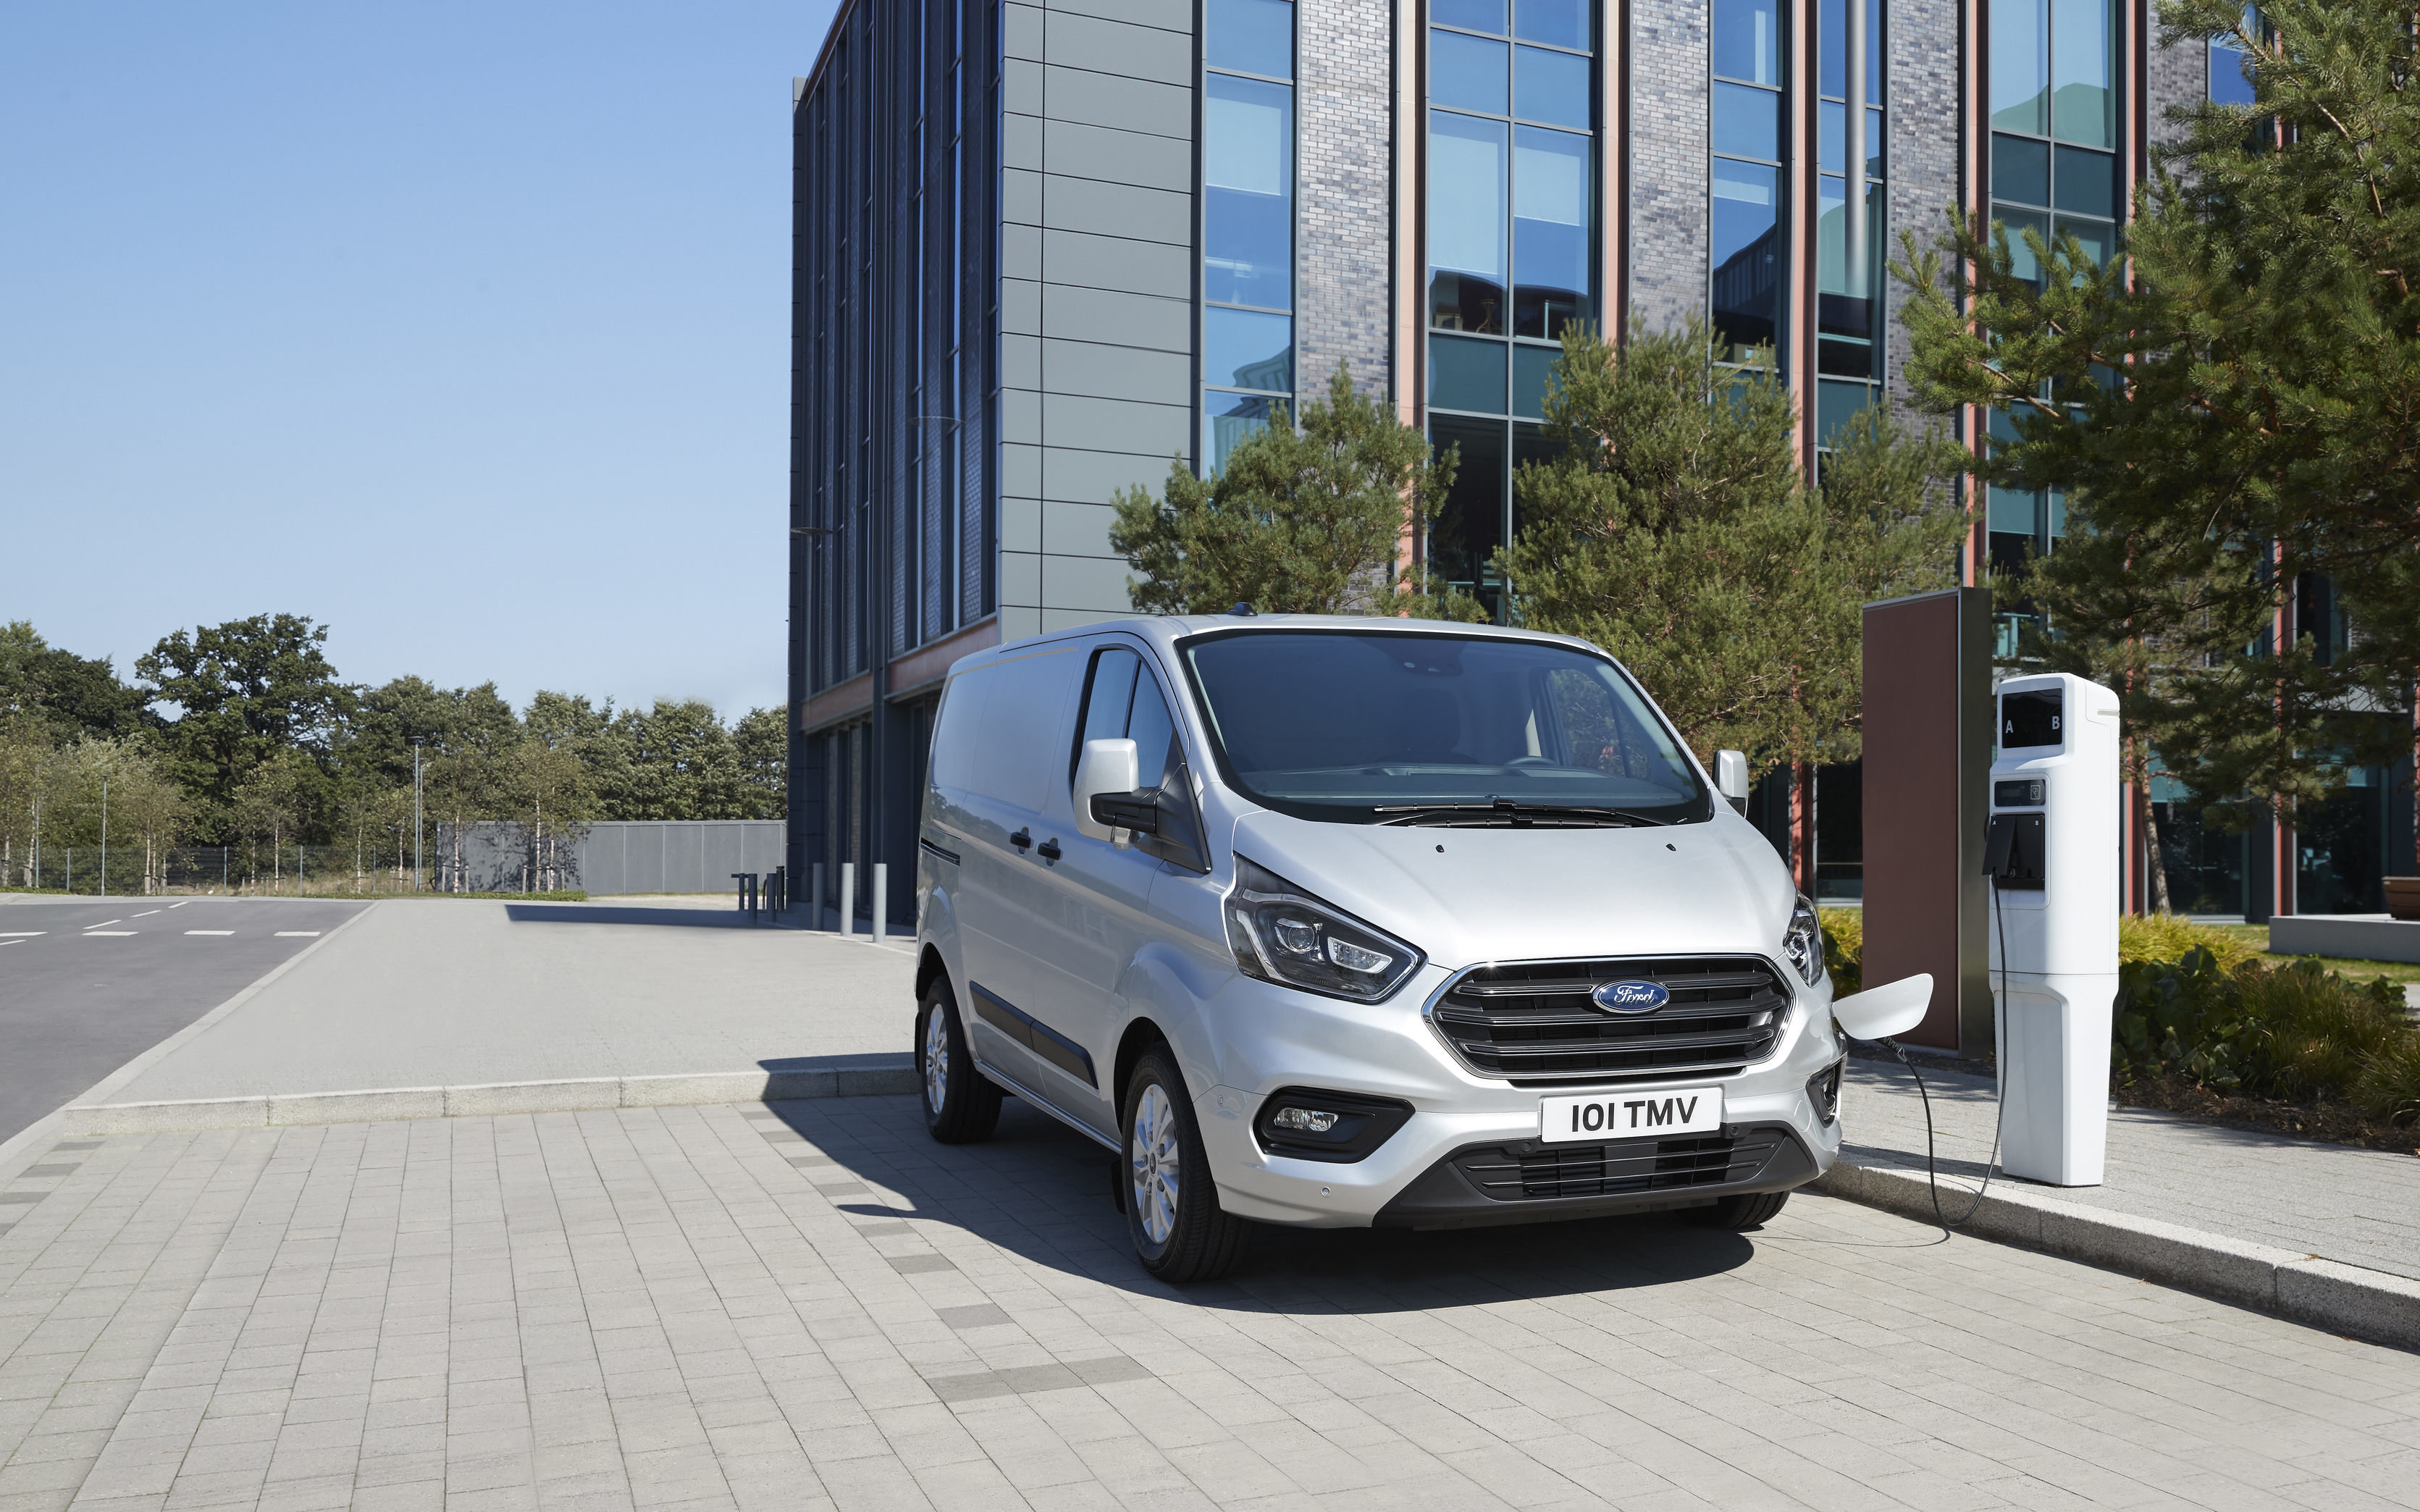 Production version of the new Transit Custom plug-in hybrid electric vehicle revealed in Hannover